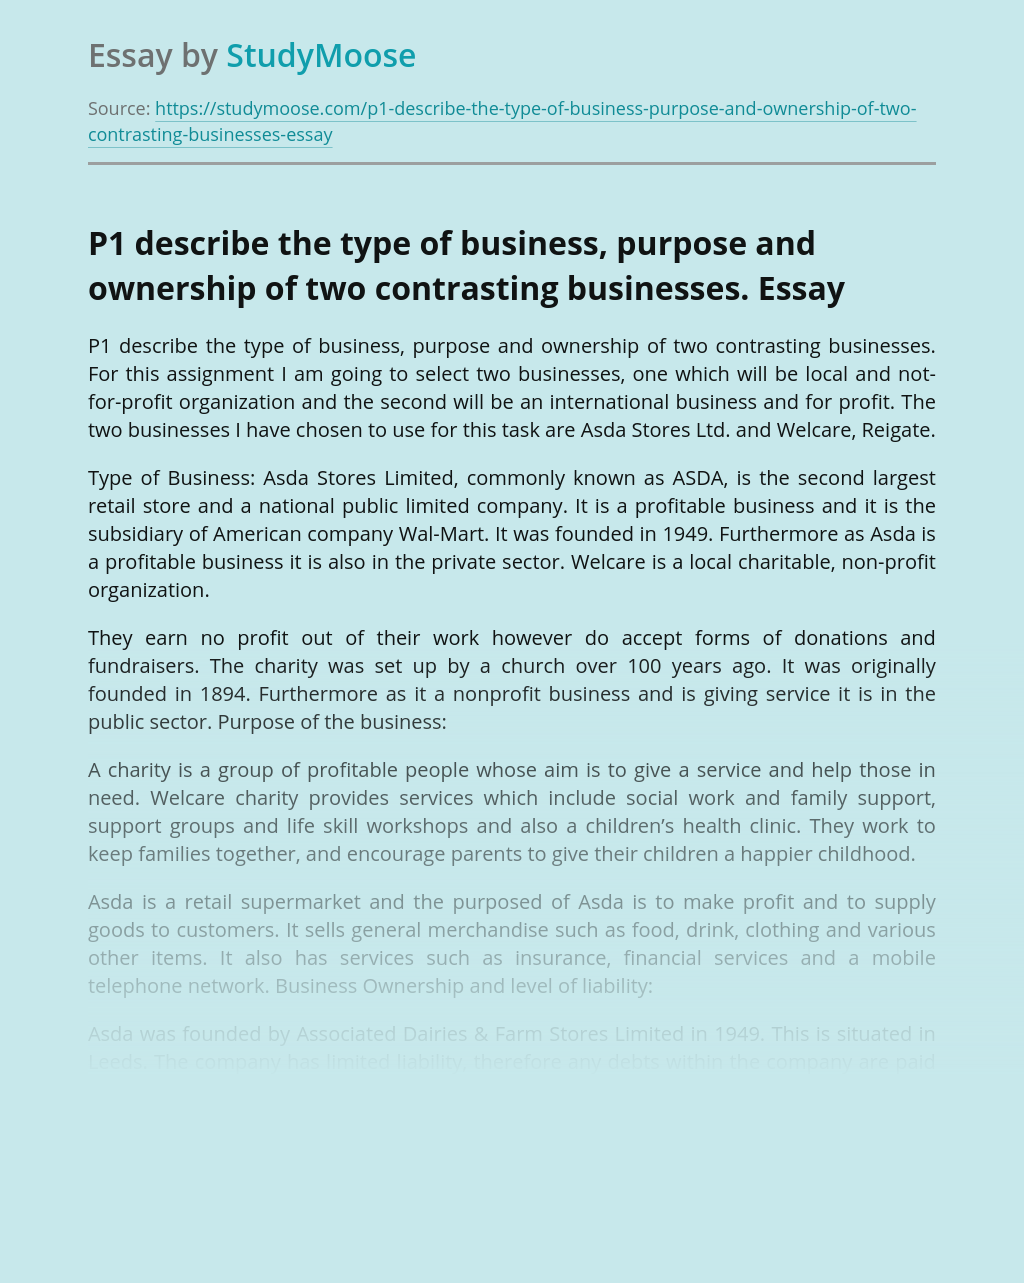 P1 describe the type of business, purpose and ownership of two contrasting businesses.